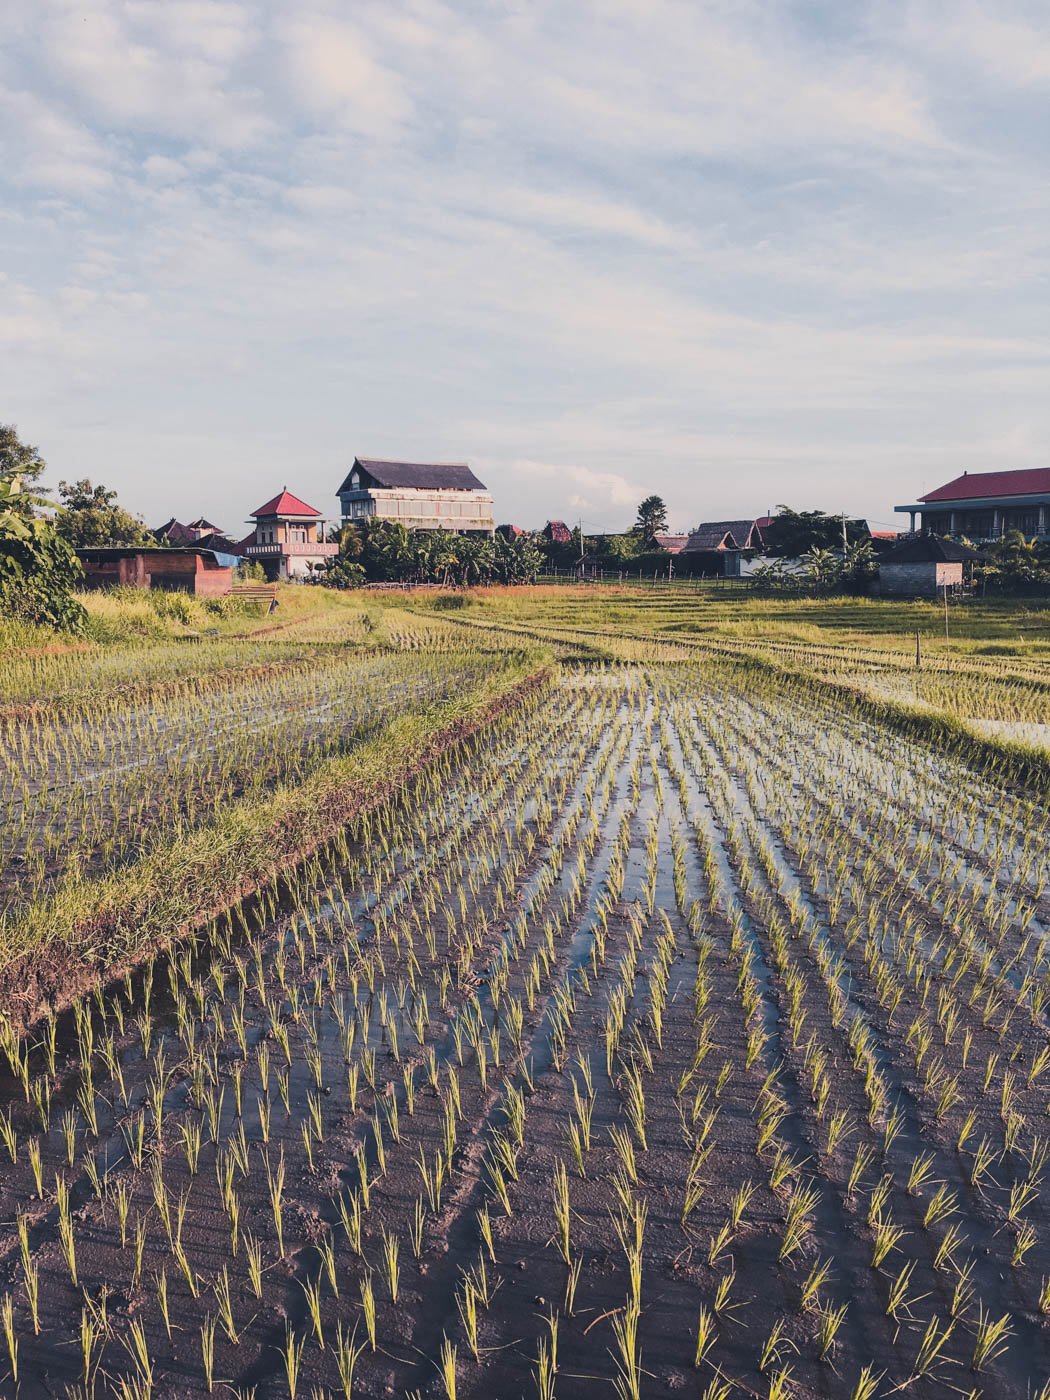 Canggu Rice Paddies - Bali Itinerary #traveldestinations #bali #beautifulplaces